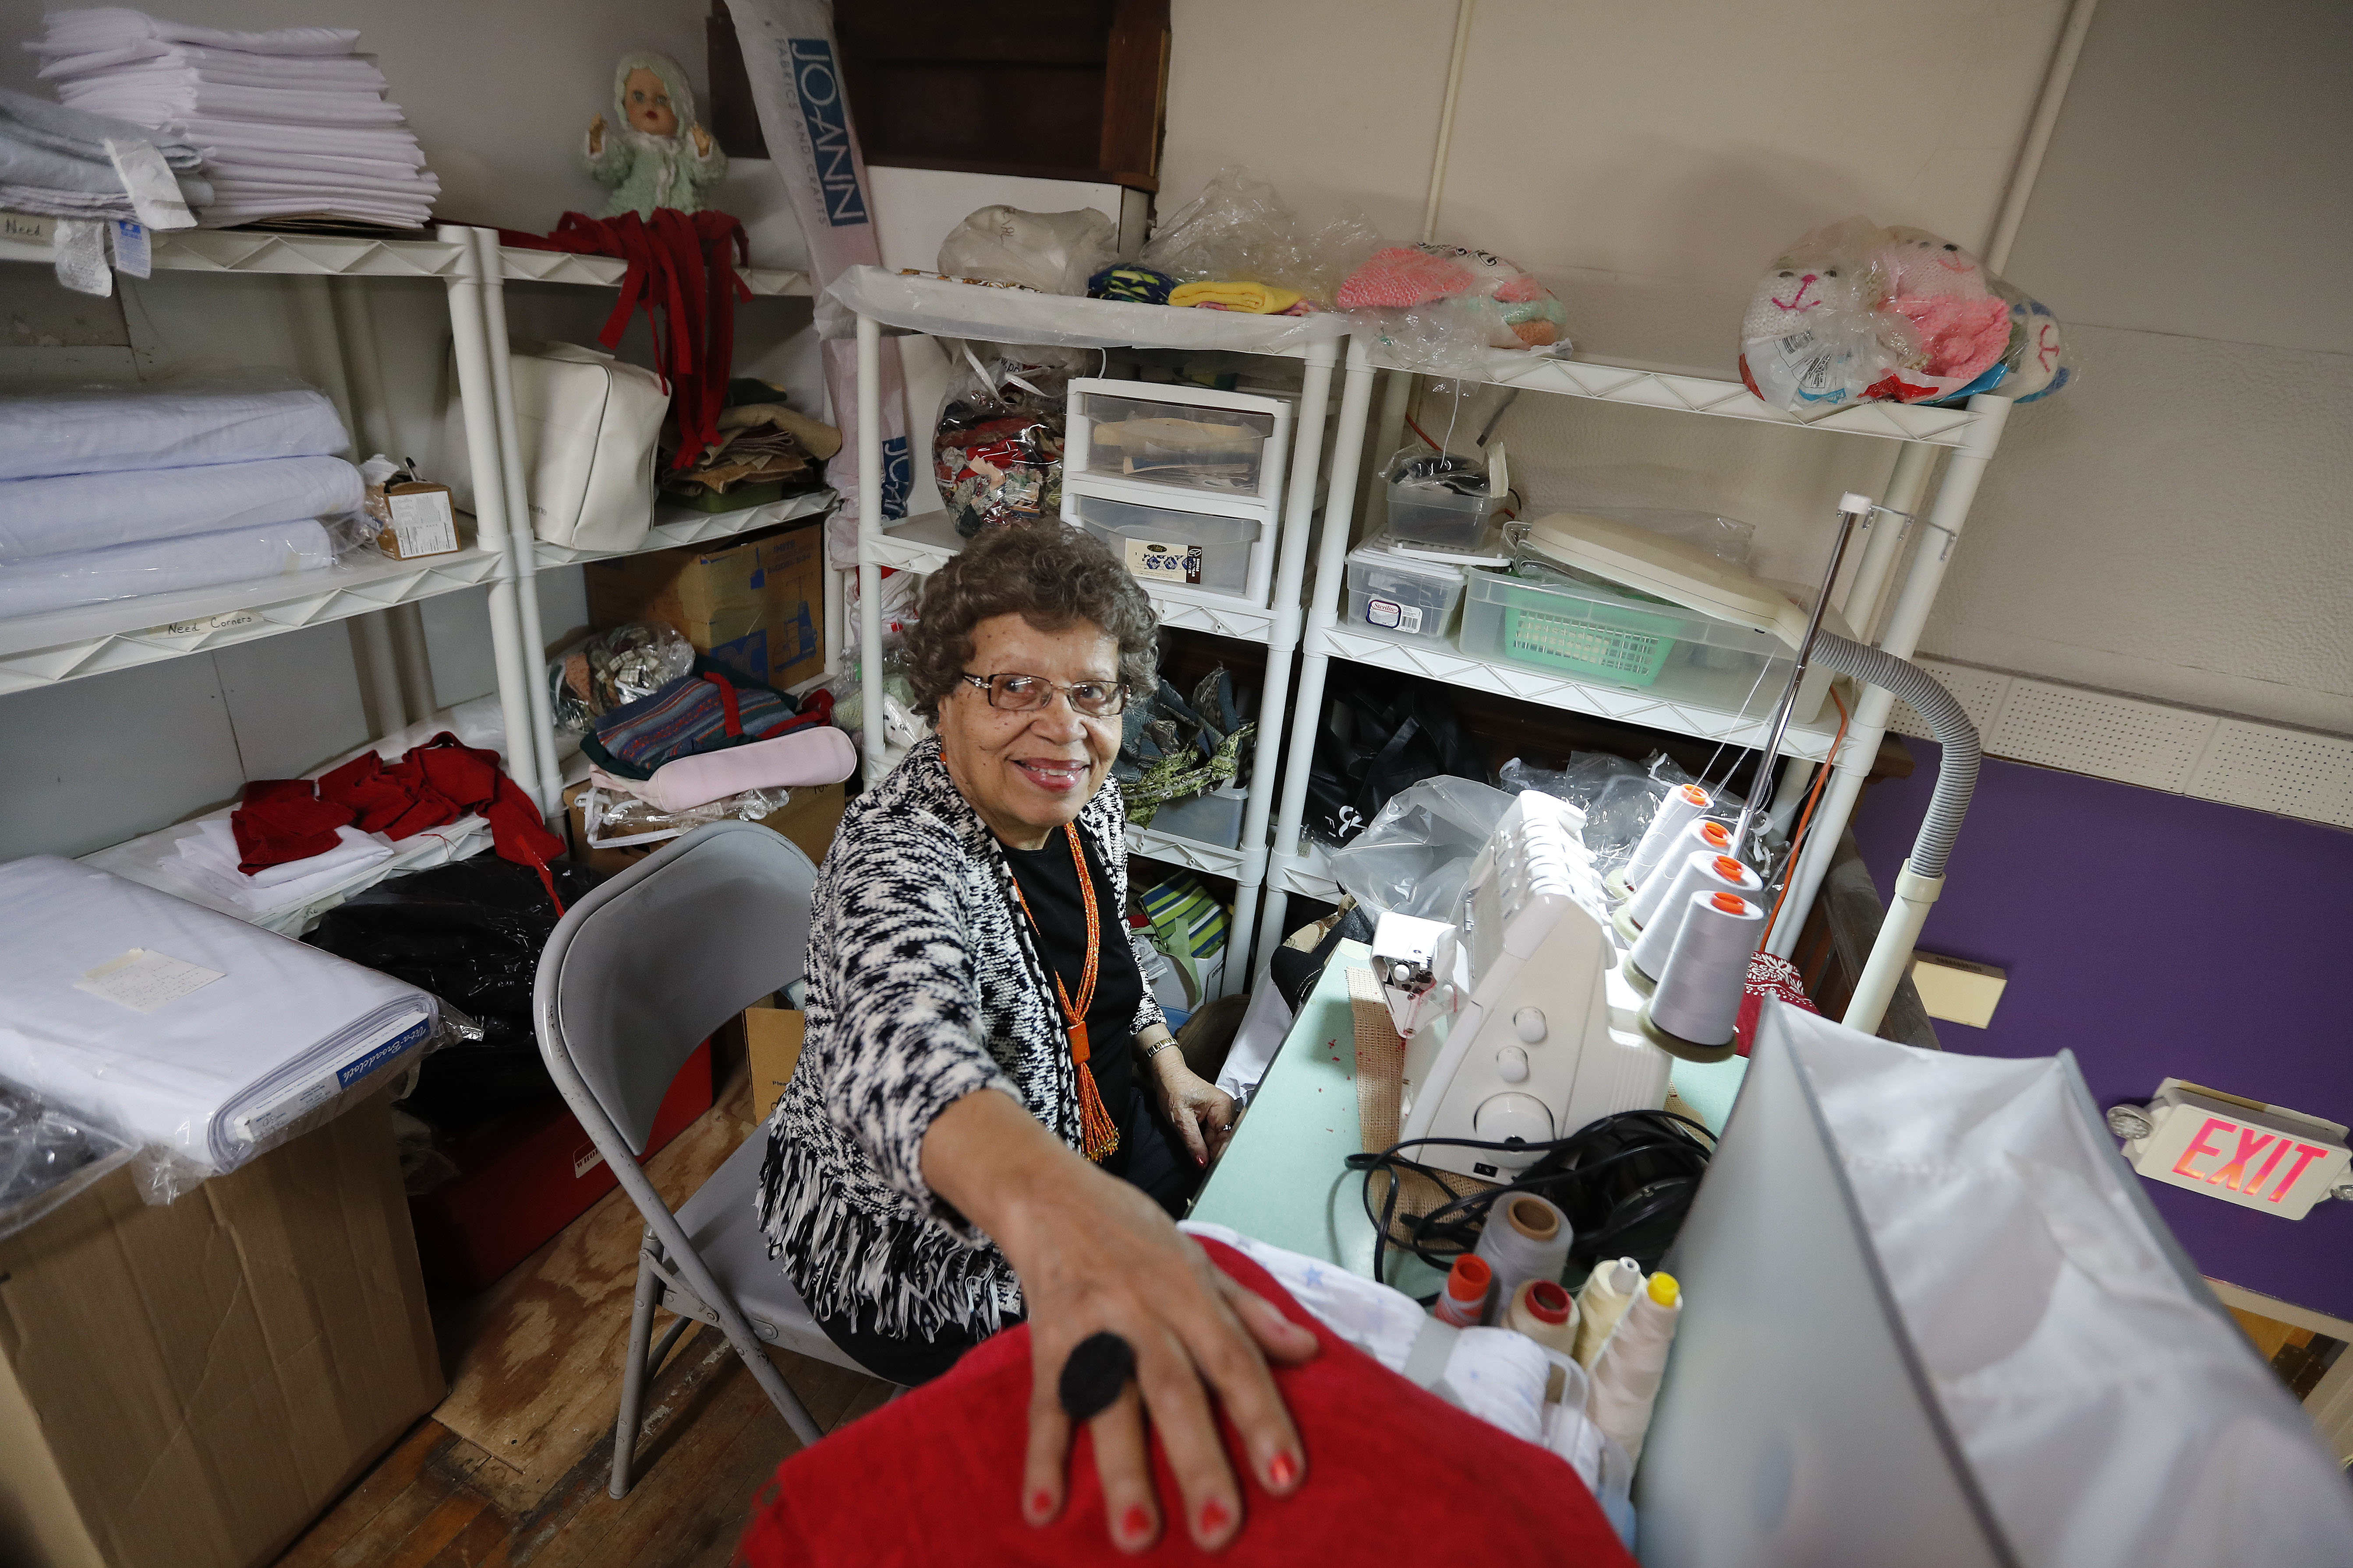 Daisy 'Estelle' Anderson of Buffalo, who has been volunteering for 20 years at Ladies of Charity, was named the 2017 national Catholic Charities volunteer of the year. (Mark Mulville/Buffalo News)